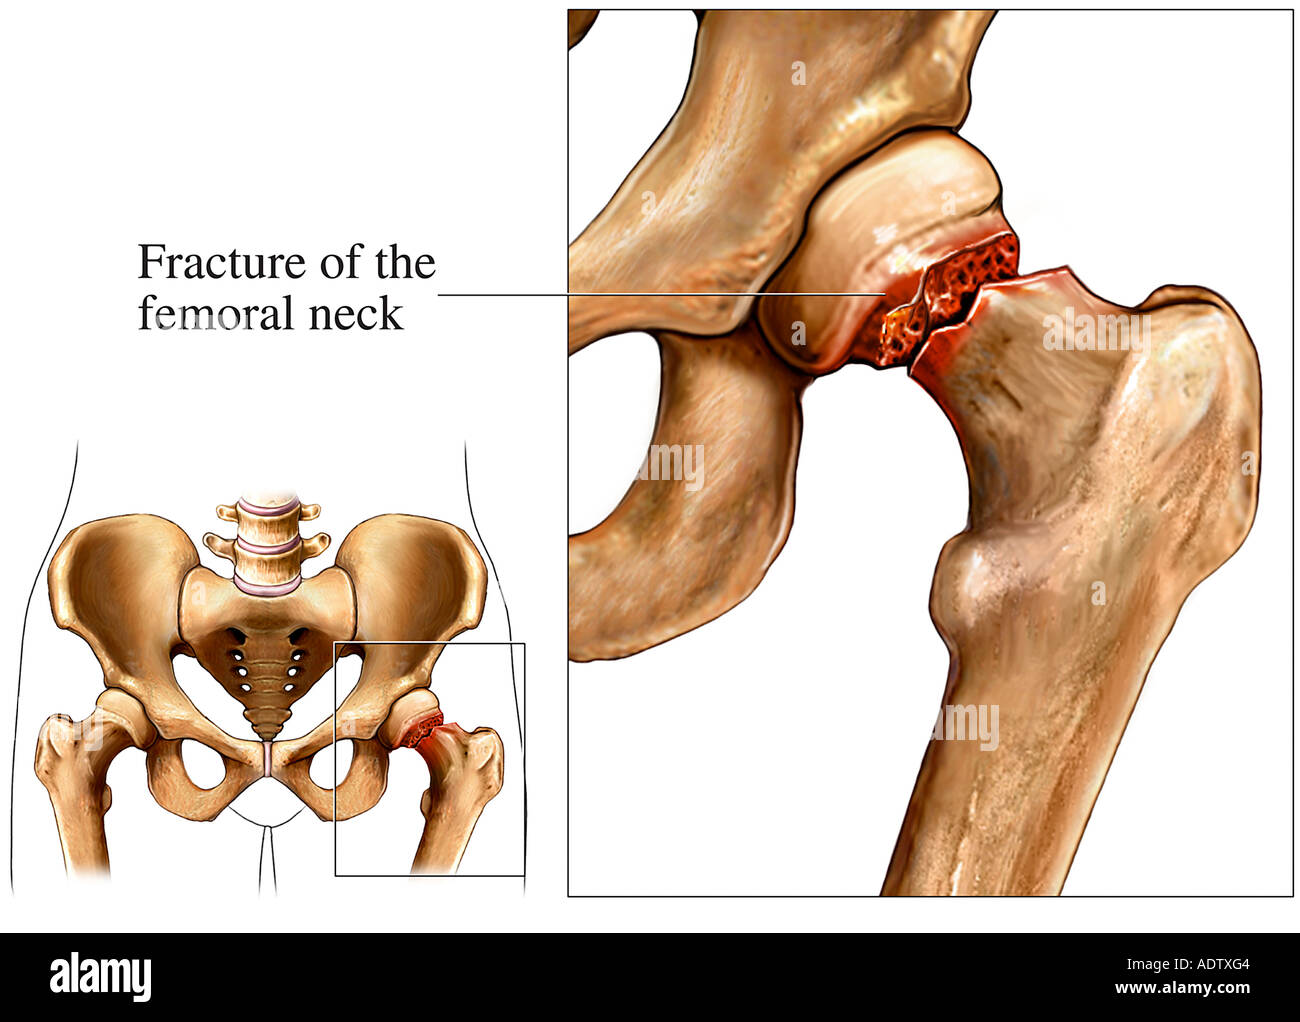 Hip Fracture, femoral neck fracture - Stock Image